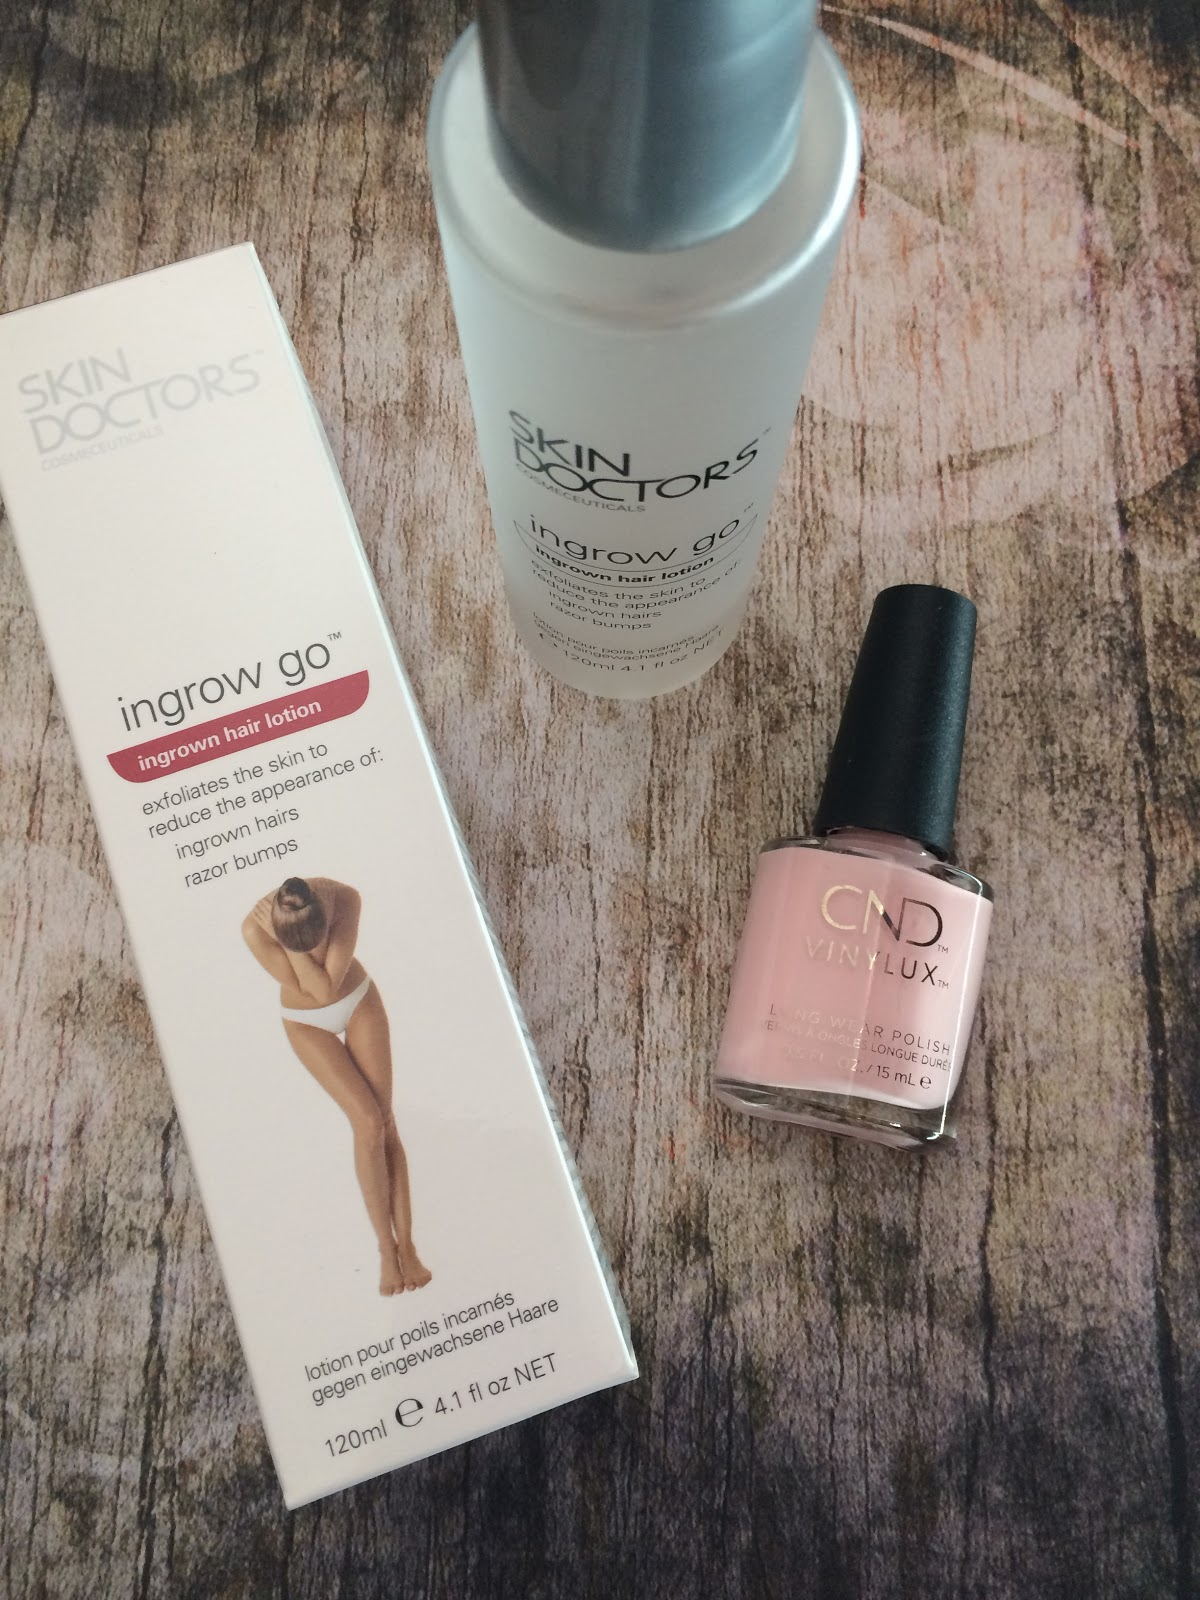 Skin Doctors Ingrow Go CND 7 day polish candied